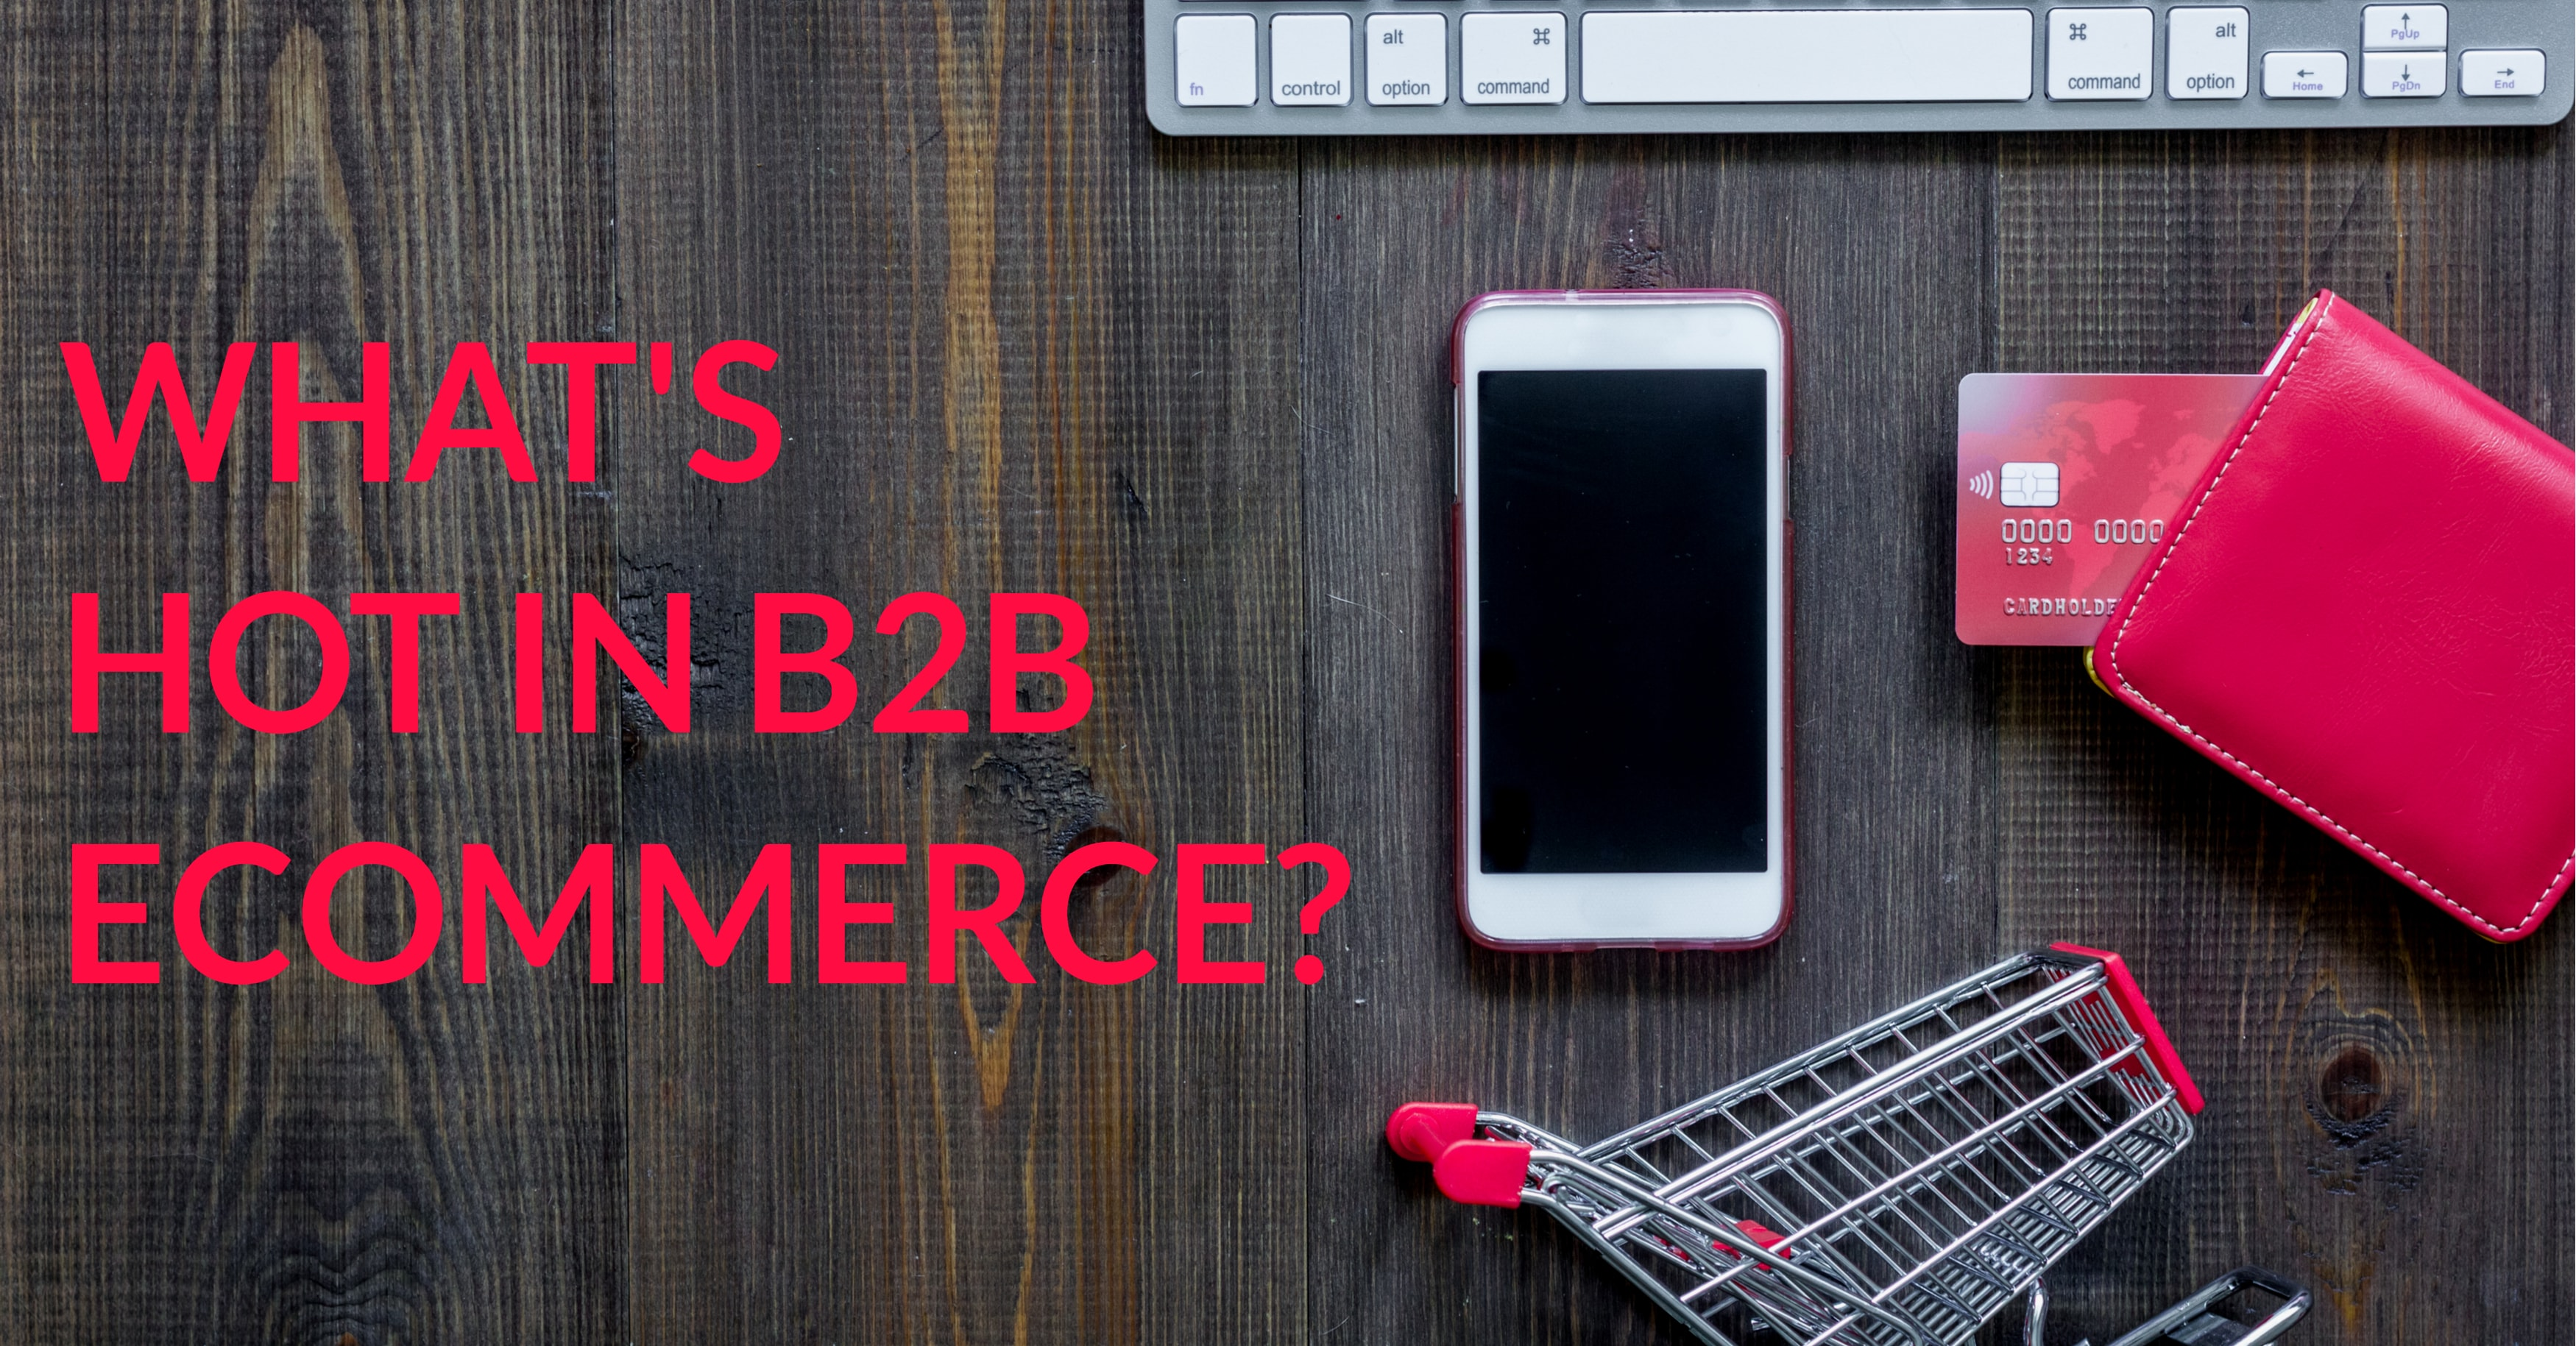 What's Hot in B2B eCommerce?